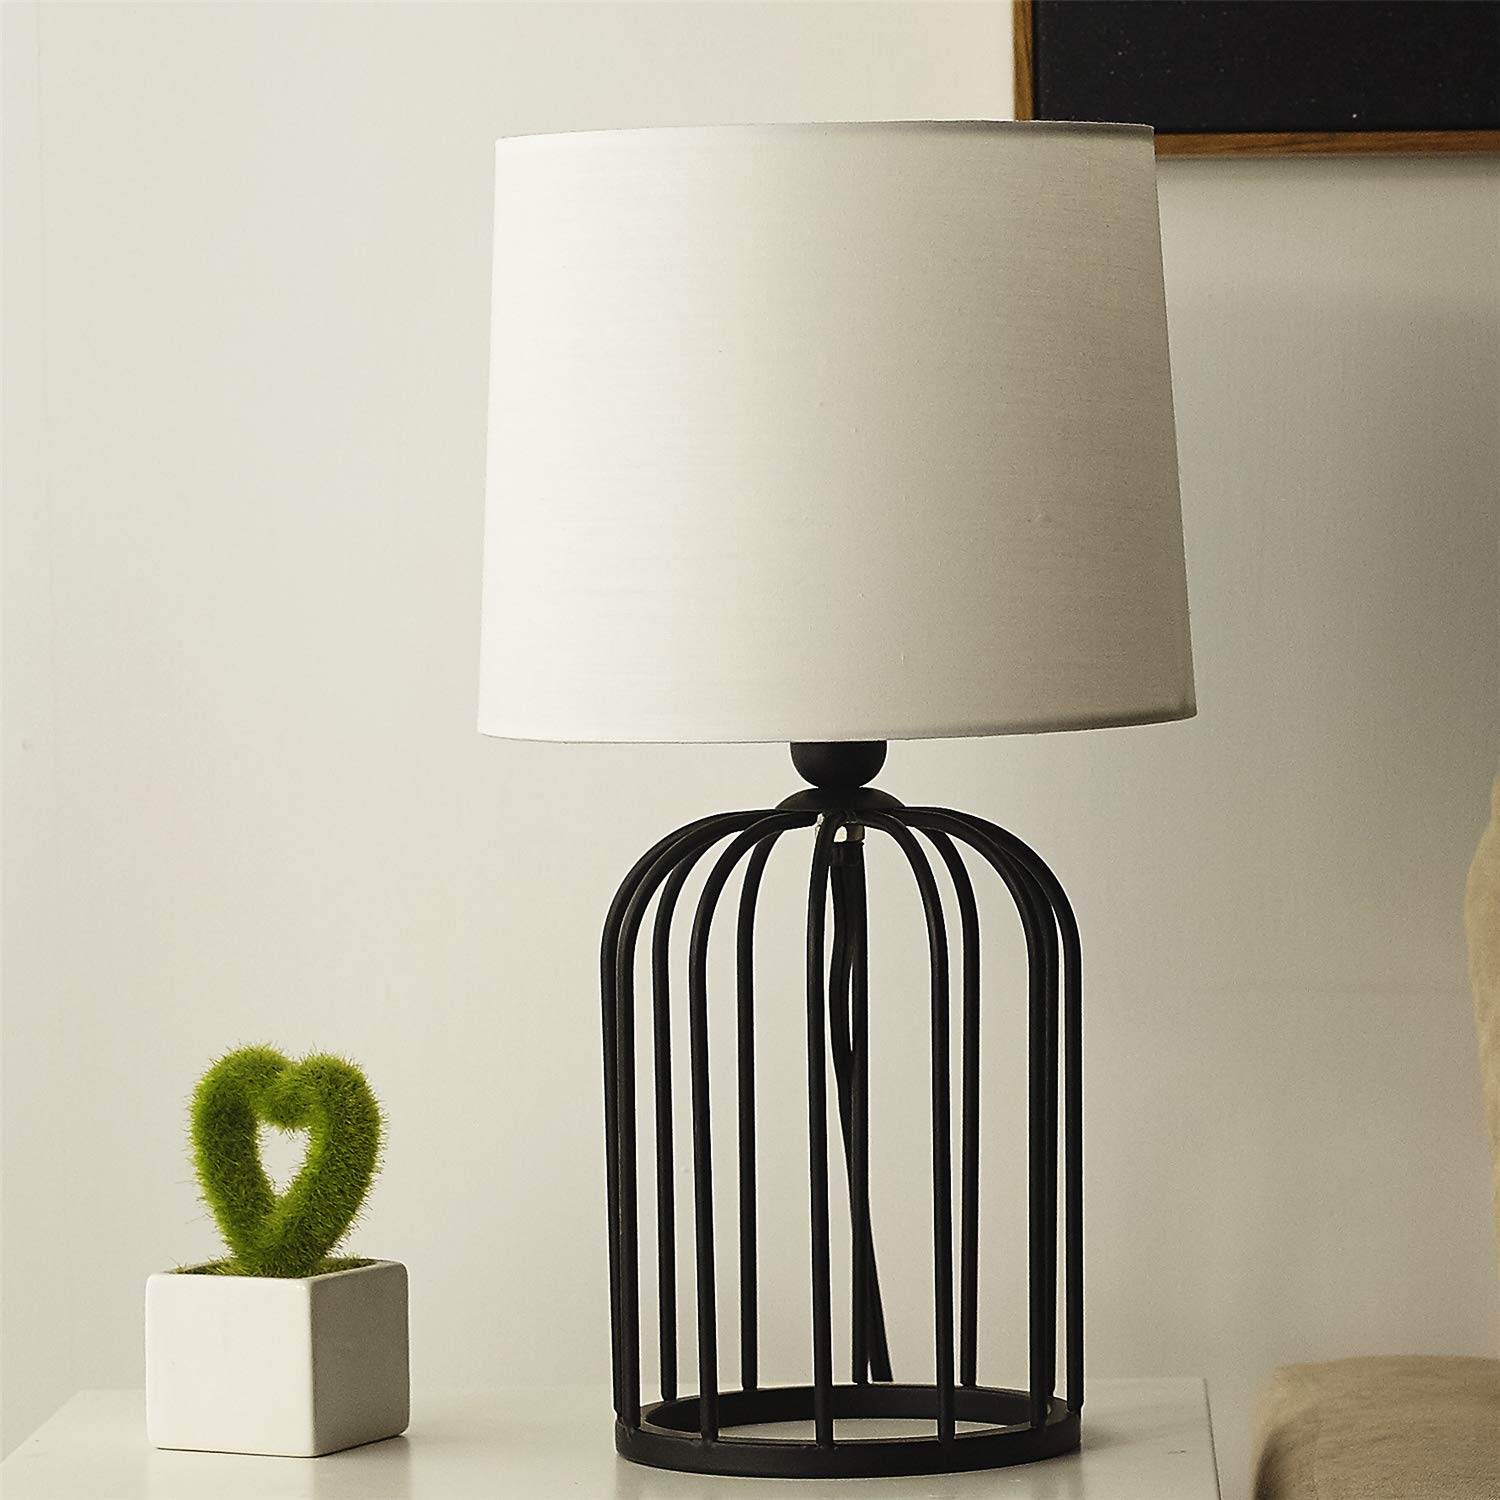 Bedside Lamp, Morden Minimalist Black Metal Bird Cage with White Fabric Table Lamp, Hollow out Base with White Shade